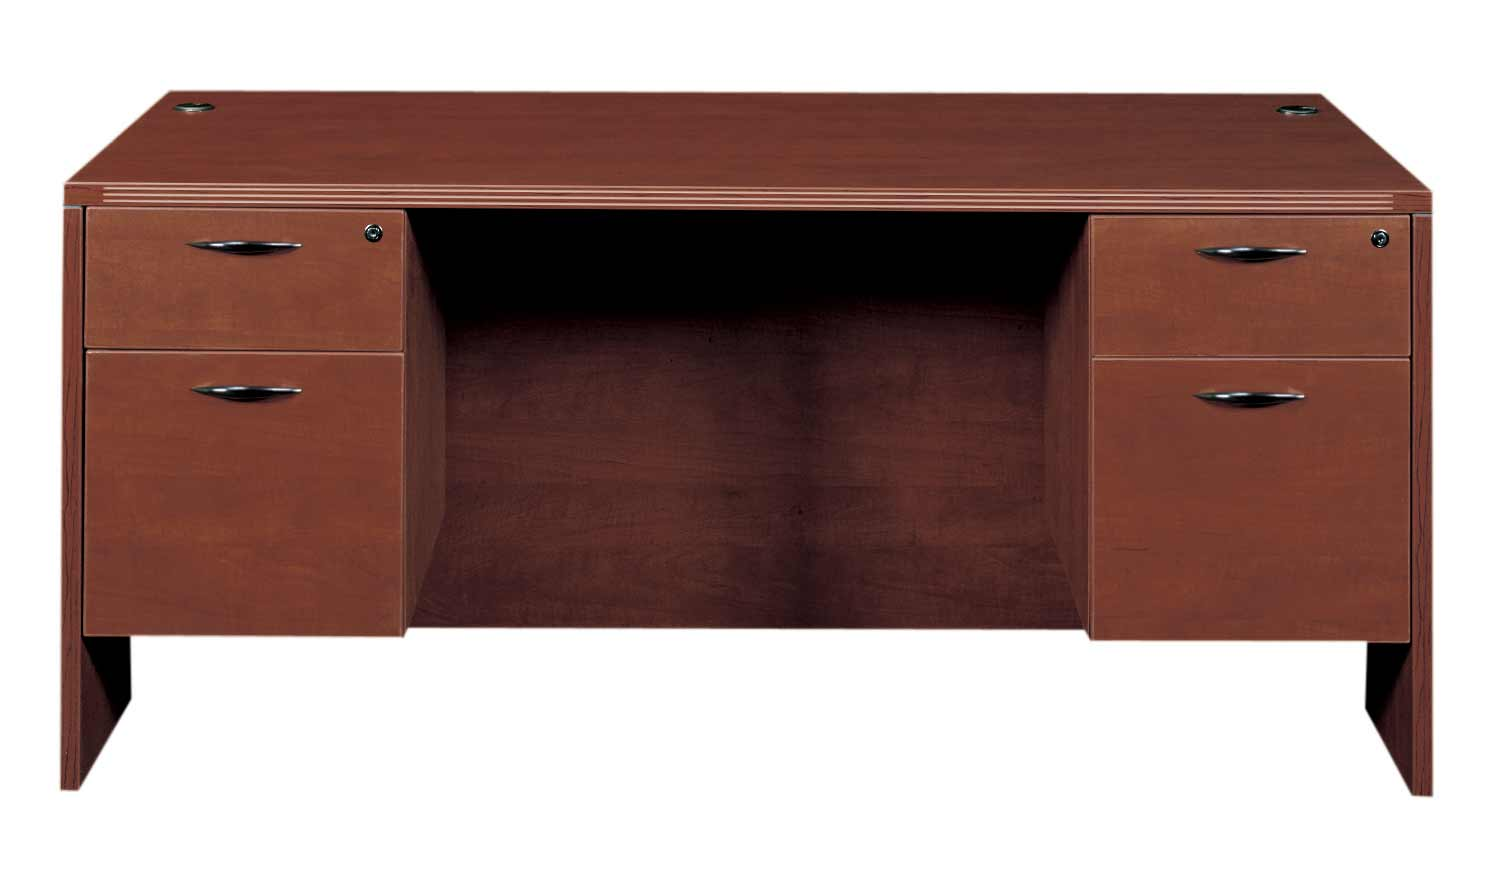 Image search: CHERRYMAN Furniture Amber L Shape Laminate Desk